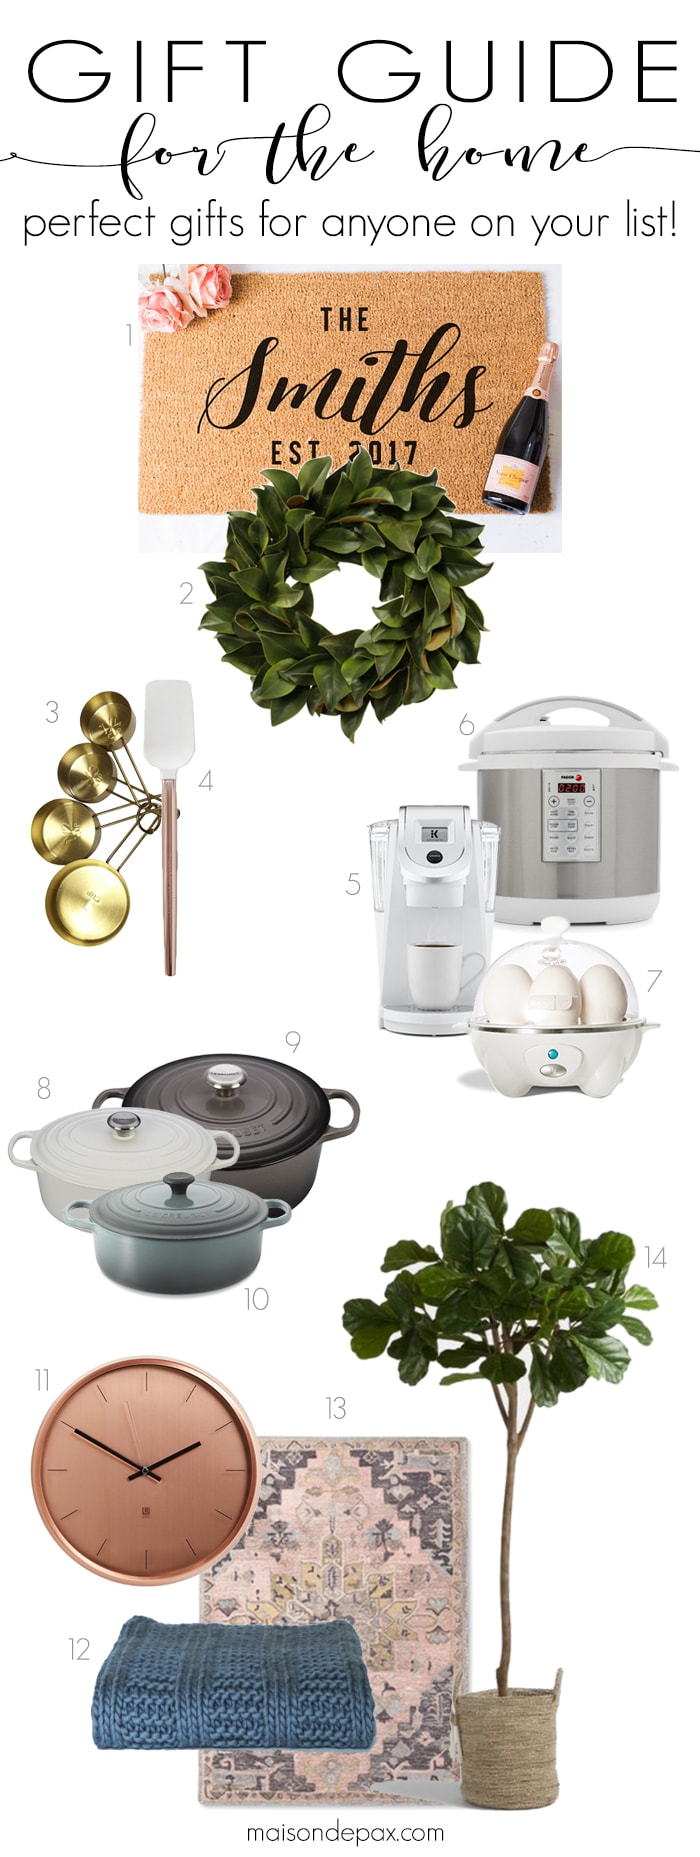 Gift ideas for the Home: from kitchen gadgets to home decor, home gift ideas can be perfect for everyone on your list! #giftguide